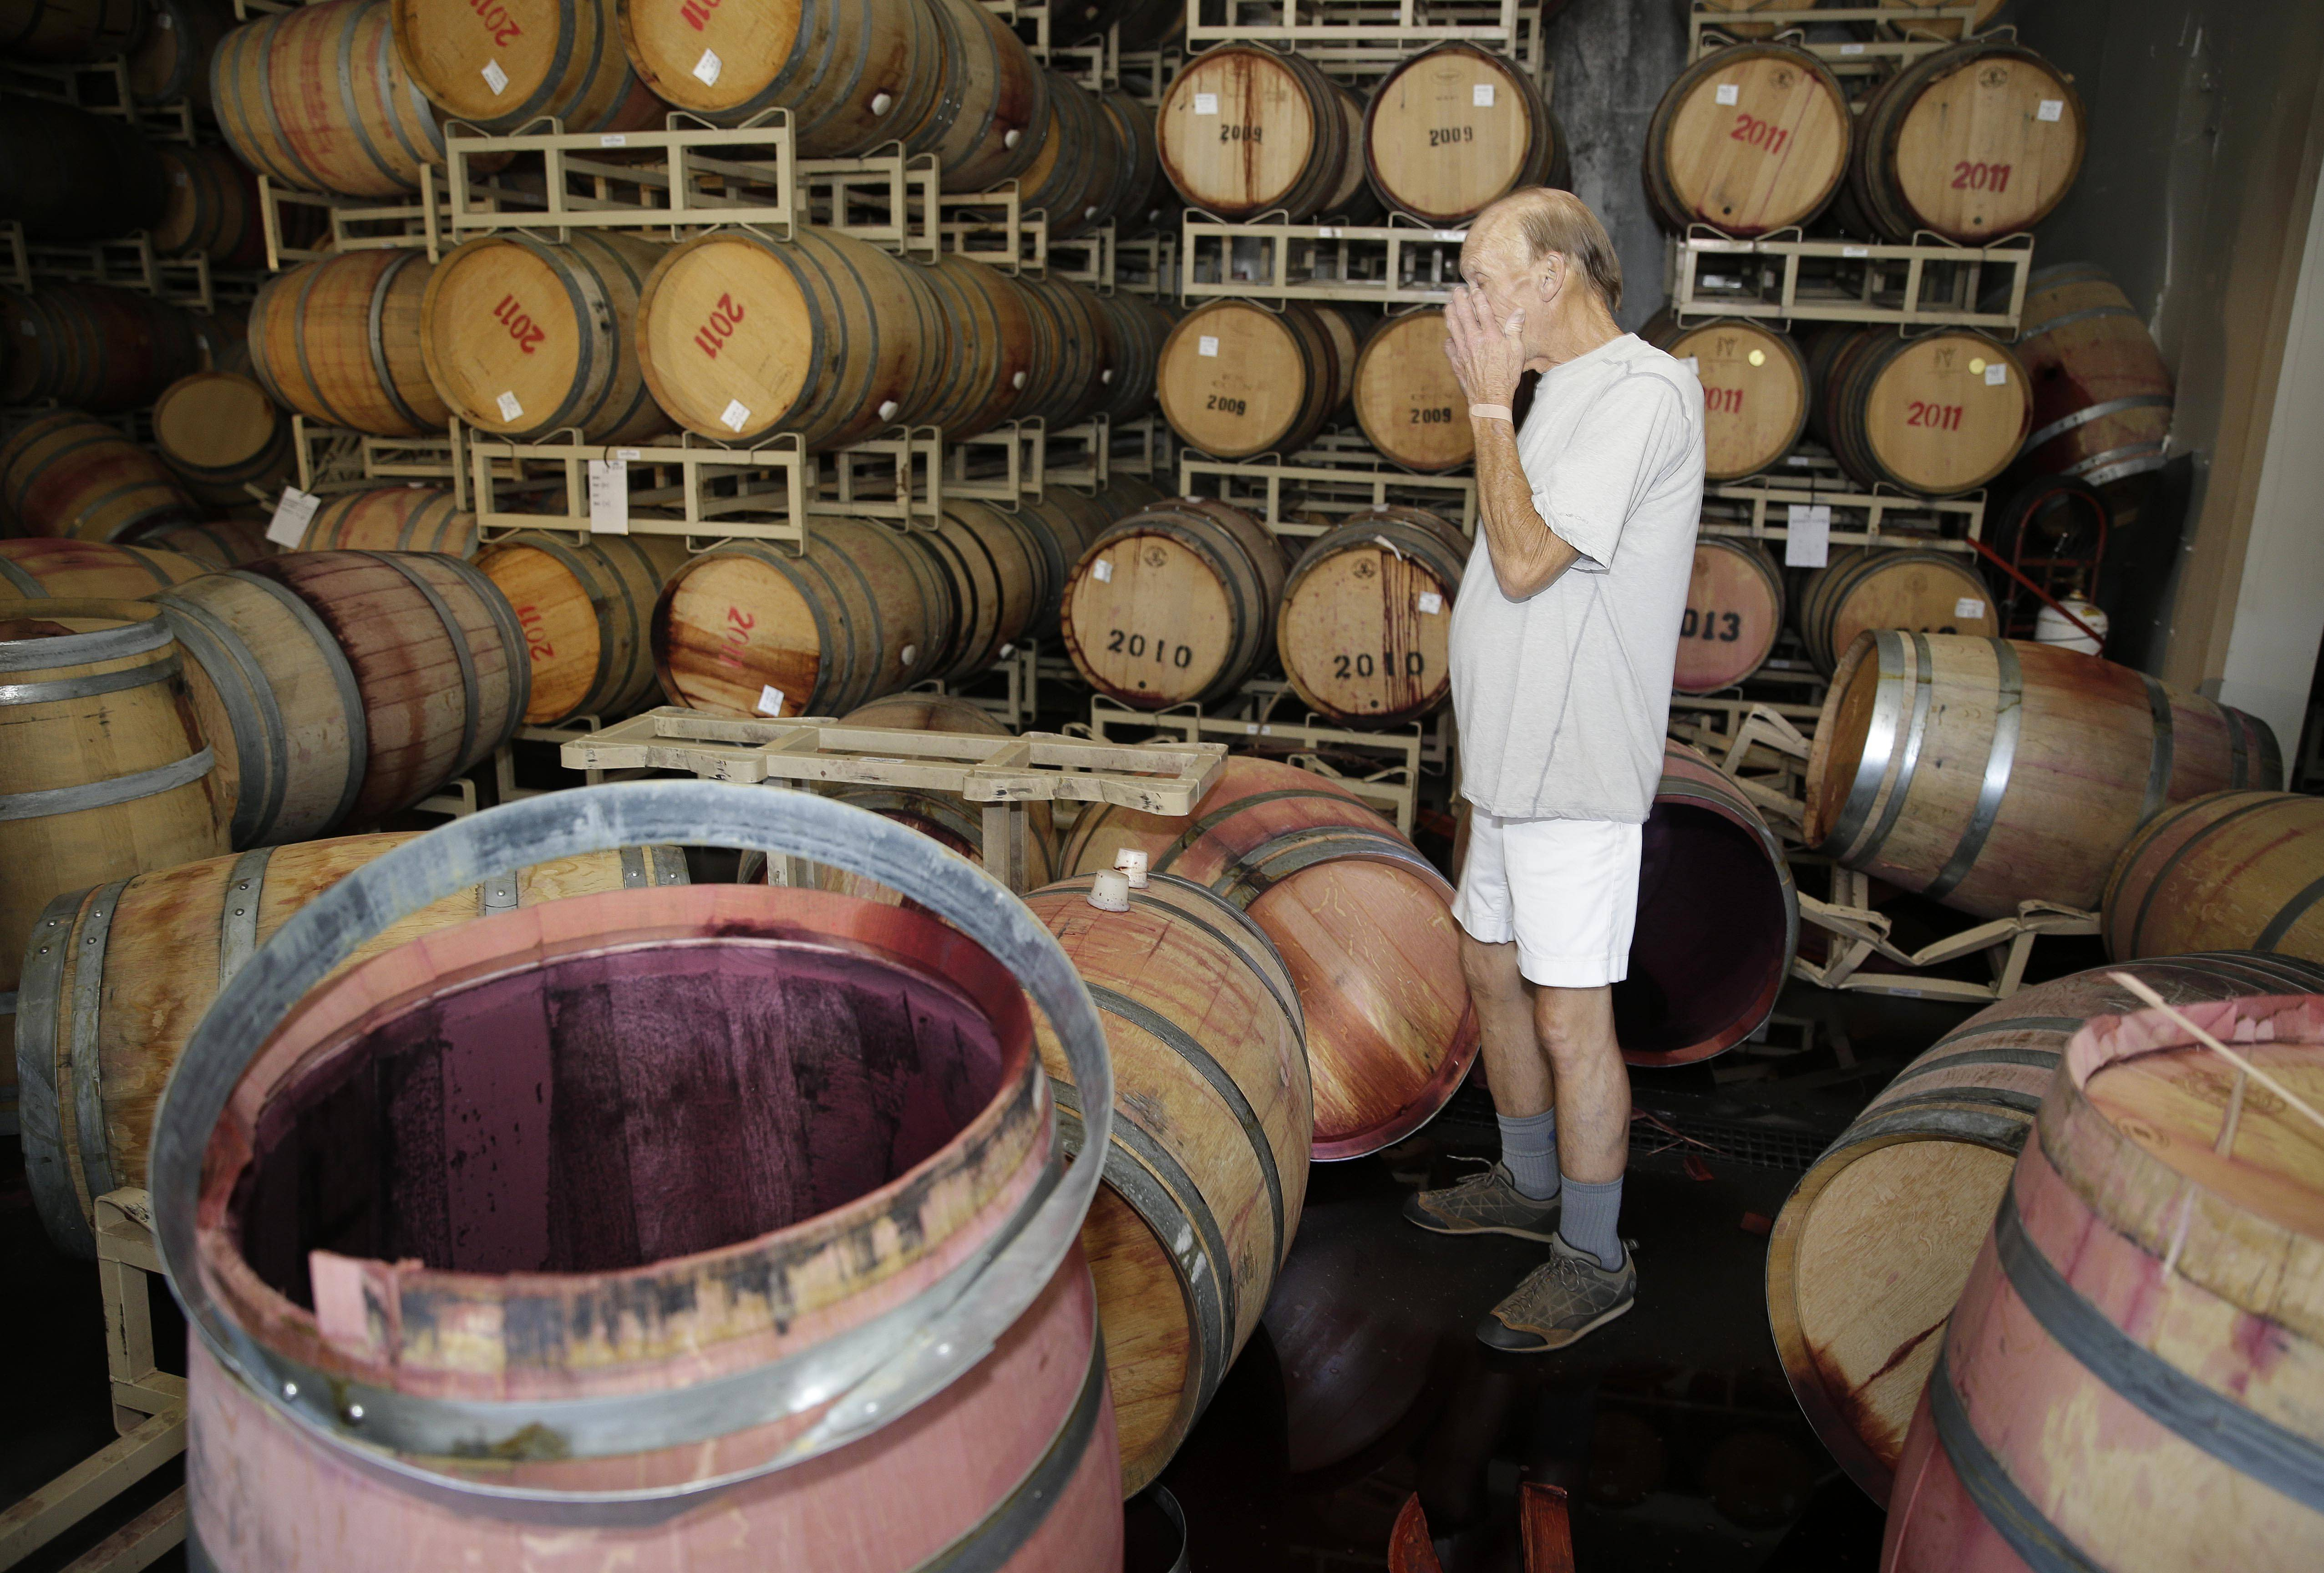 California winemakers cleaning up after quake